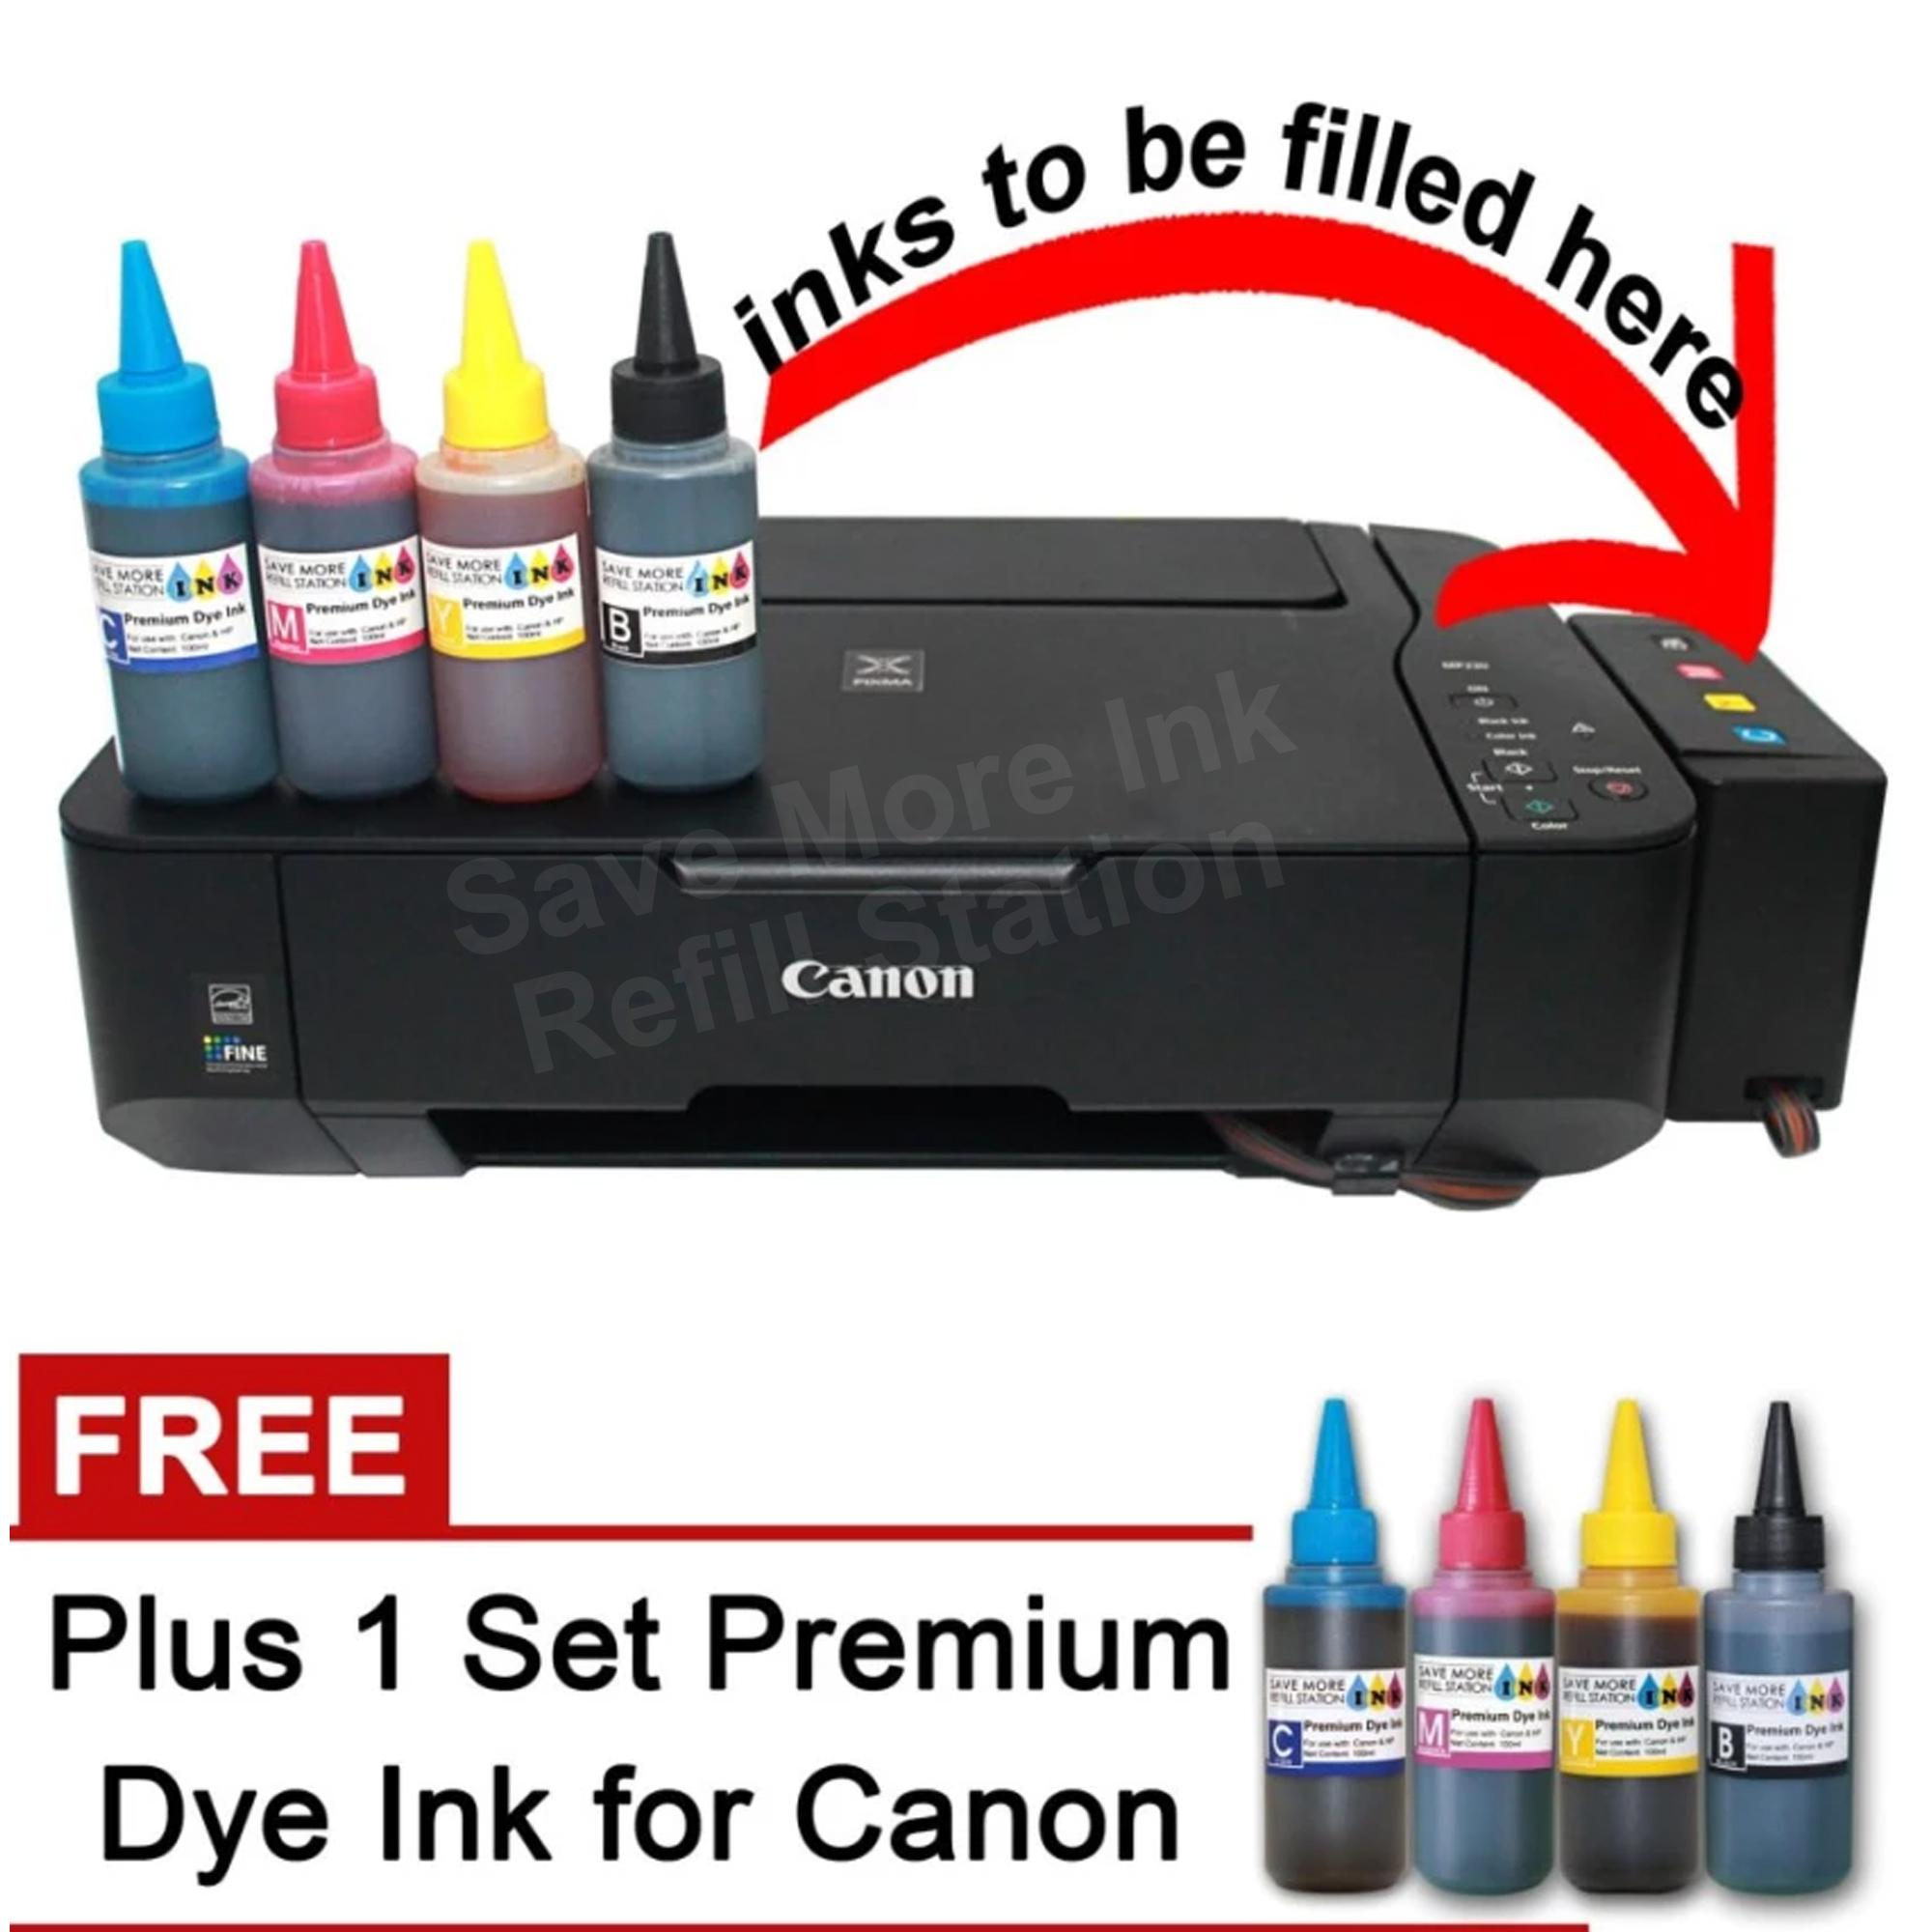 Canon Pixma MP237 3-in-1 Printer w/ CISS Filled w/ 4 Color Inks